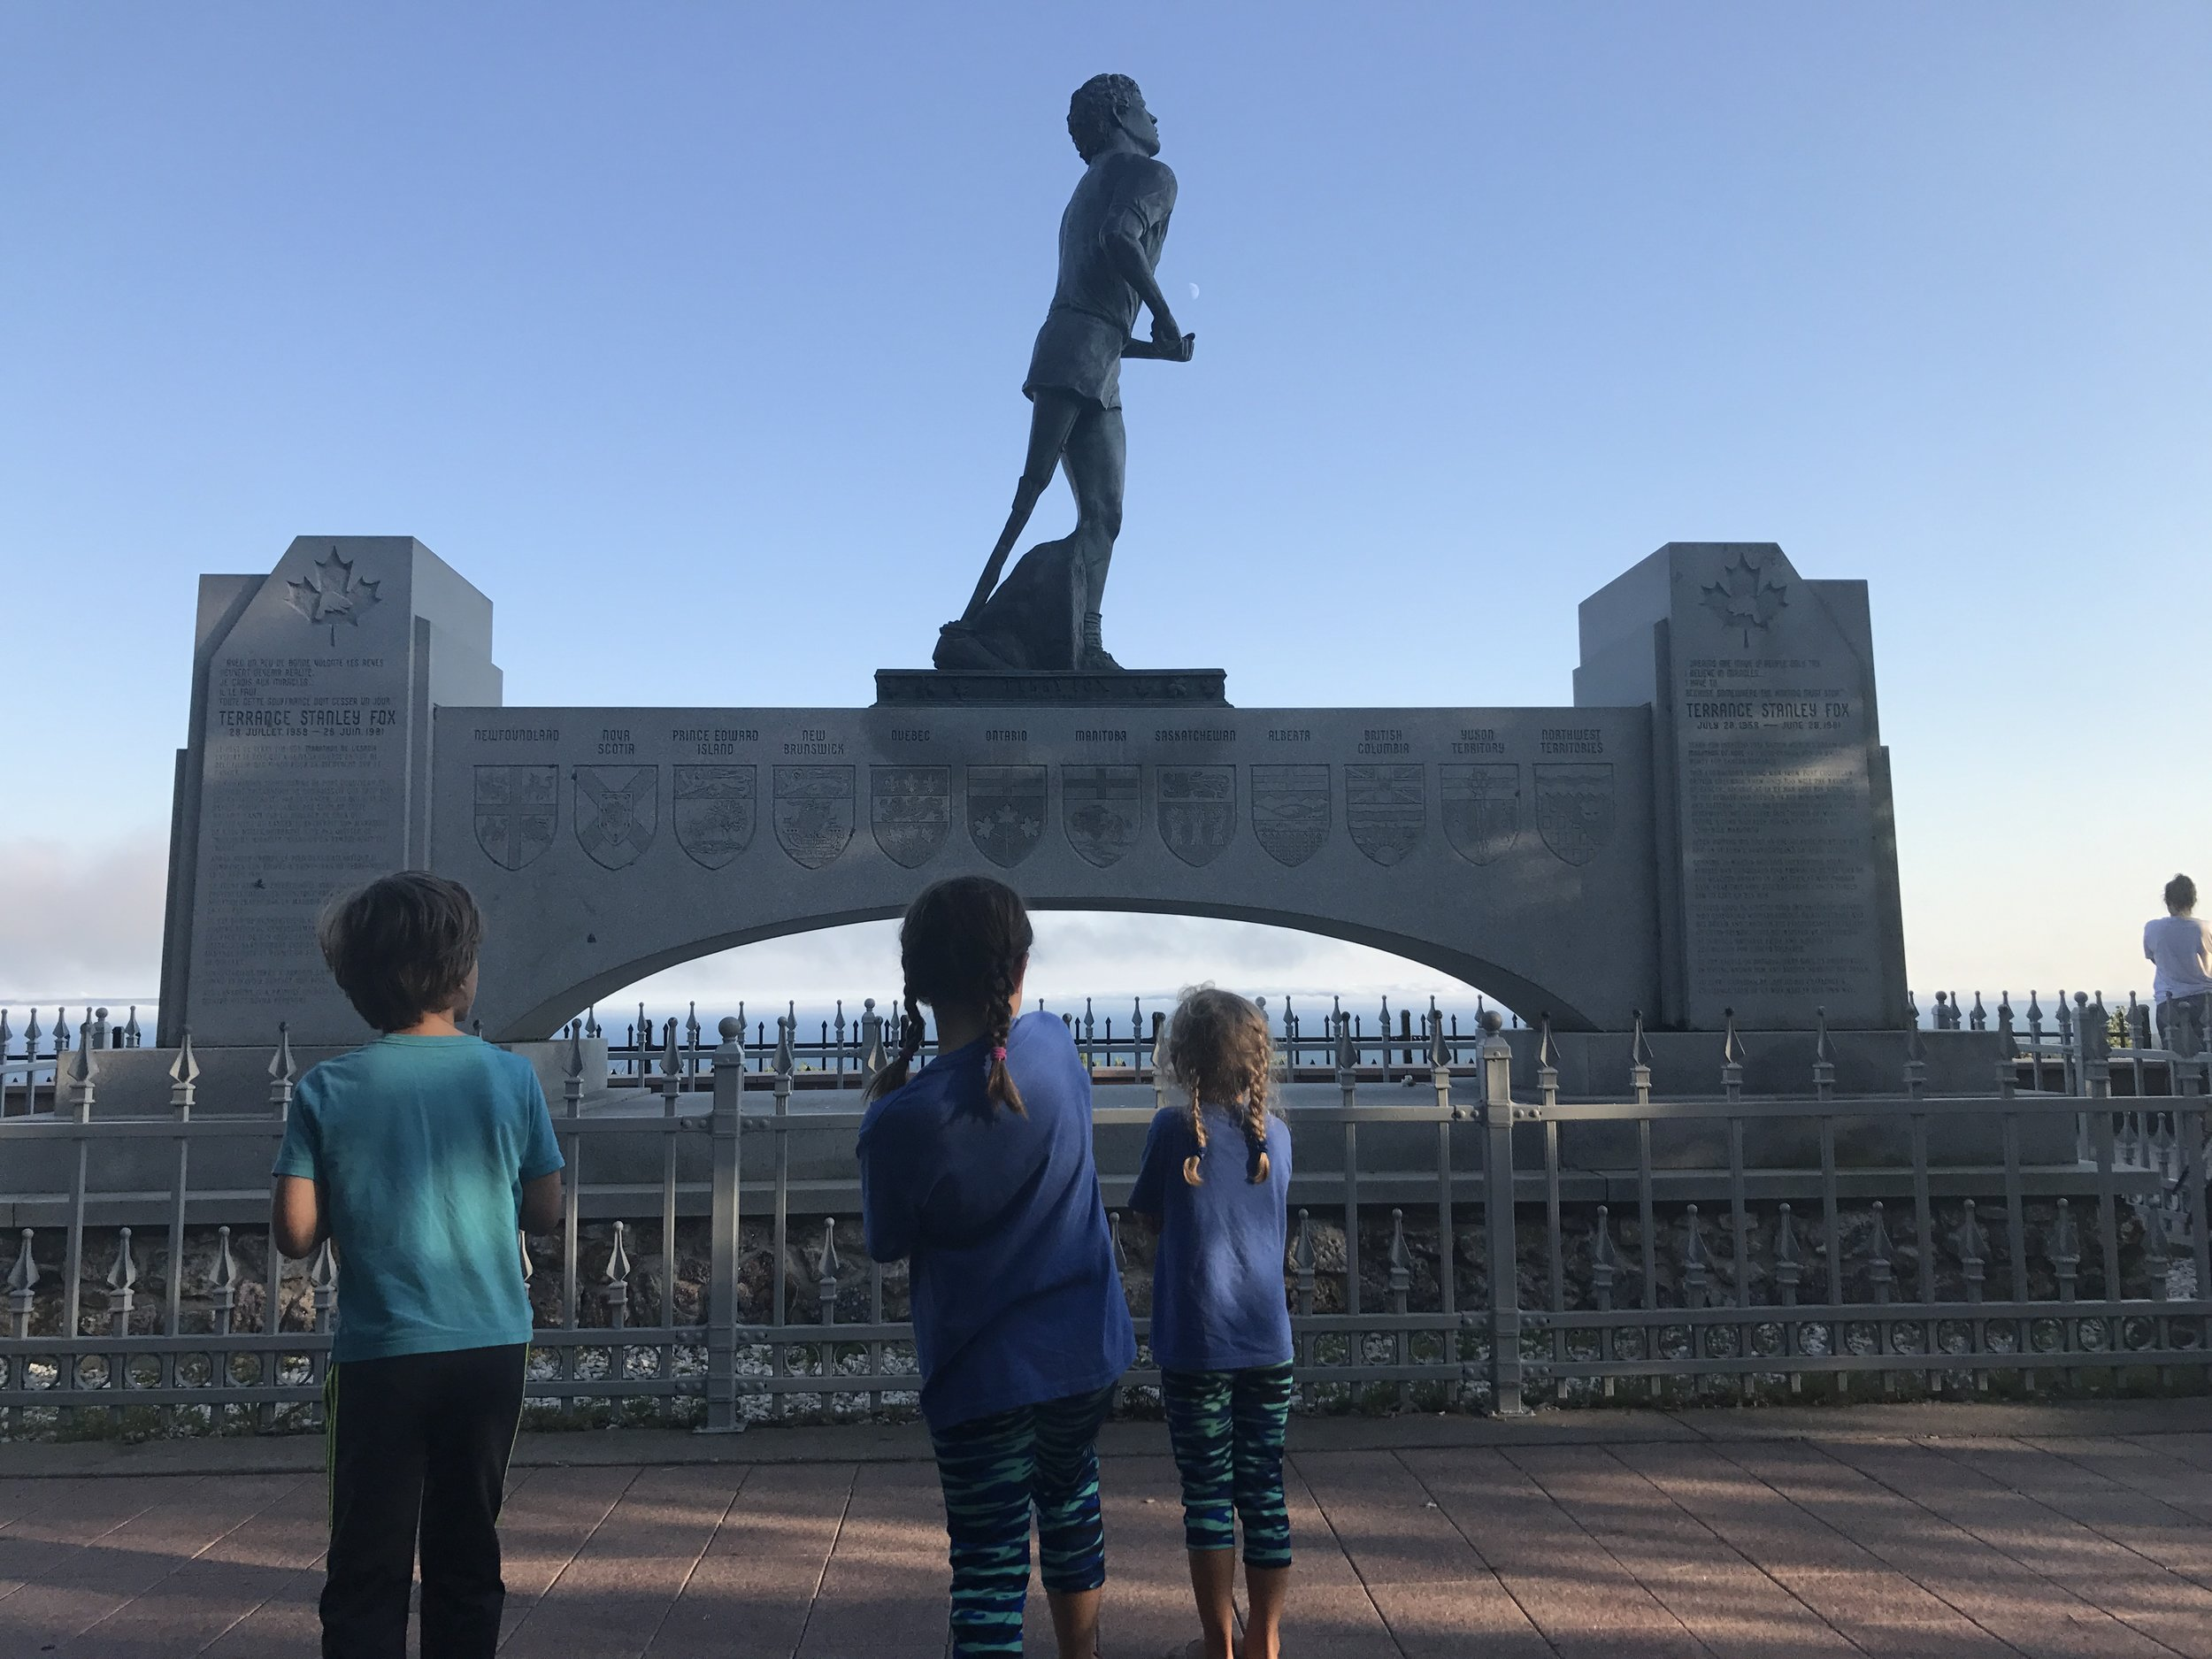 Taking a moment to admire Terry Fox's legacy.